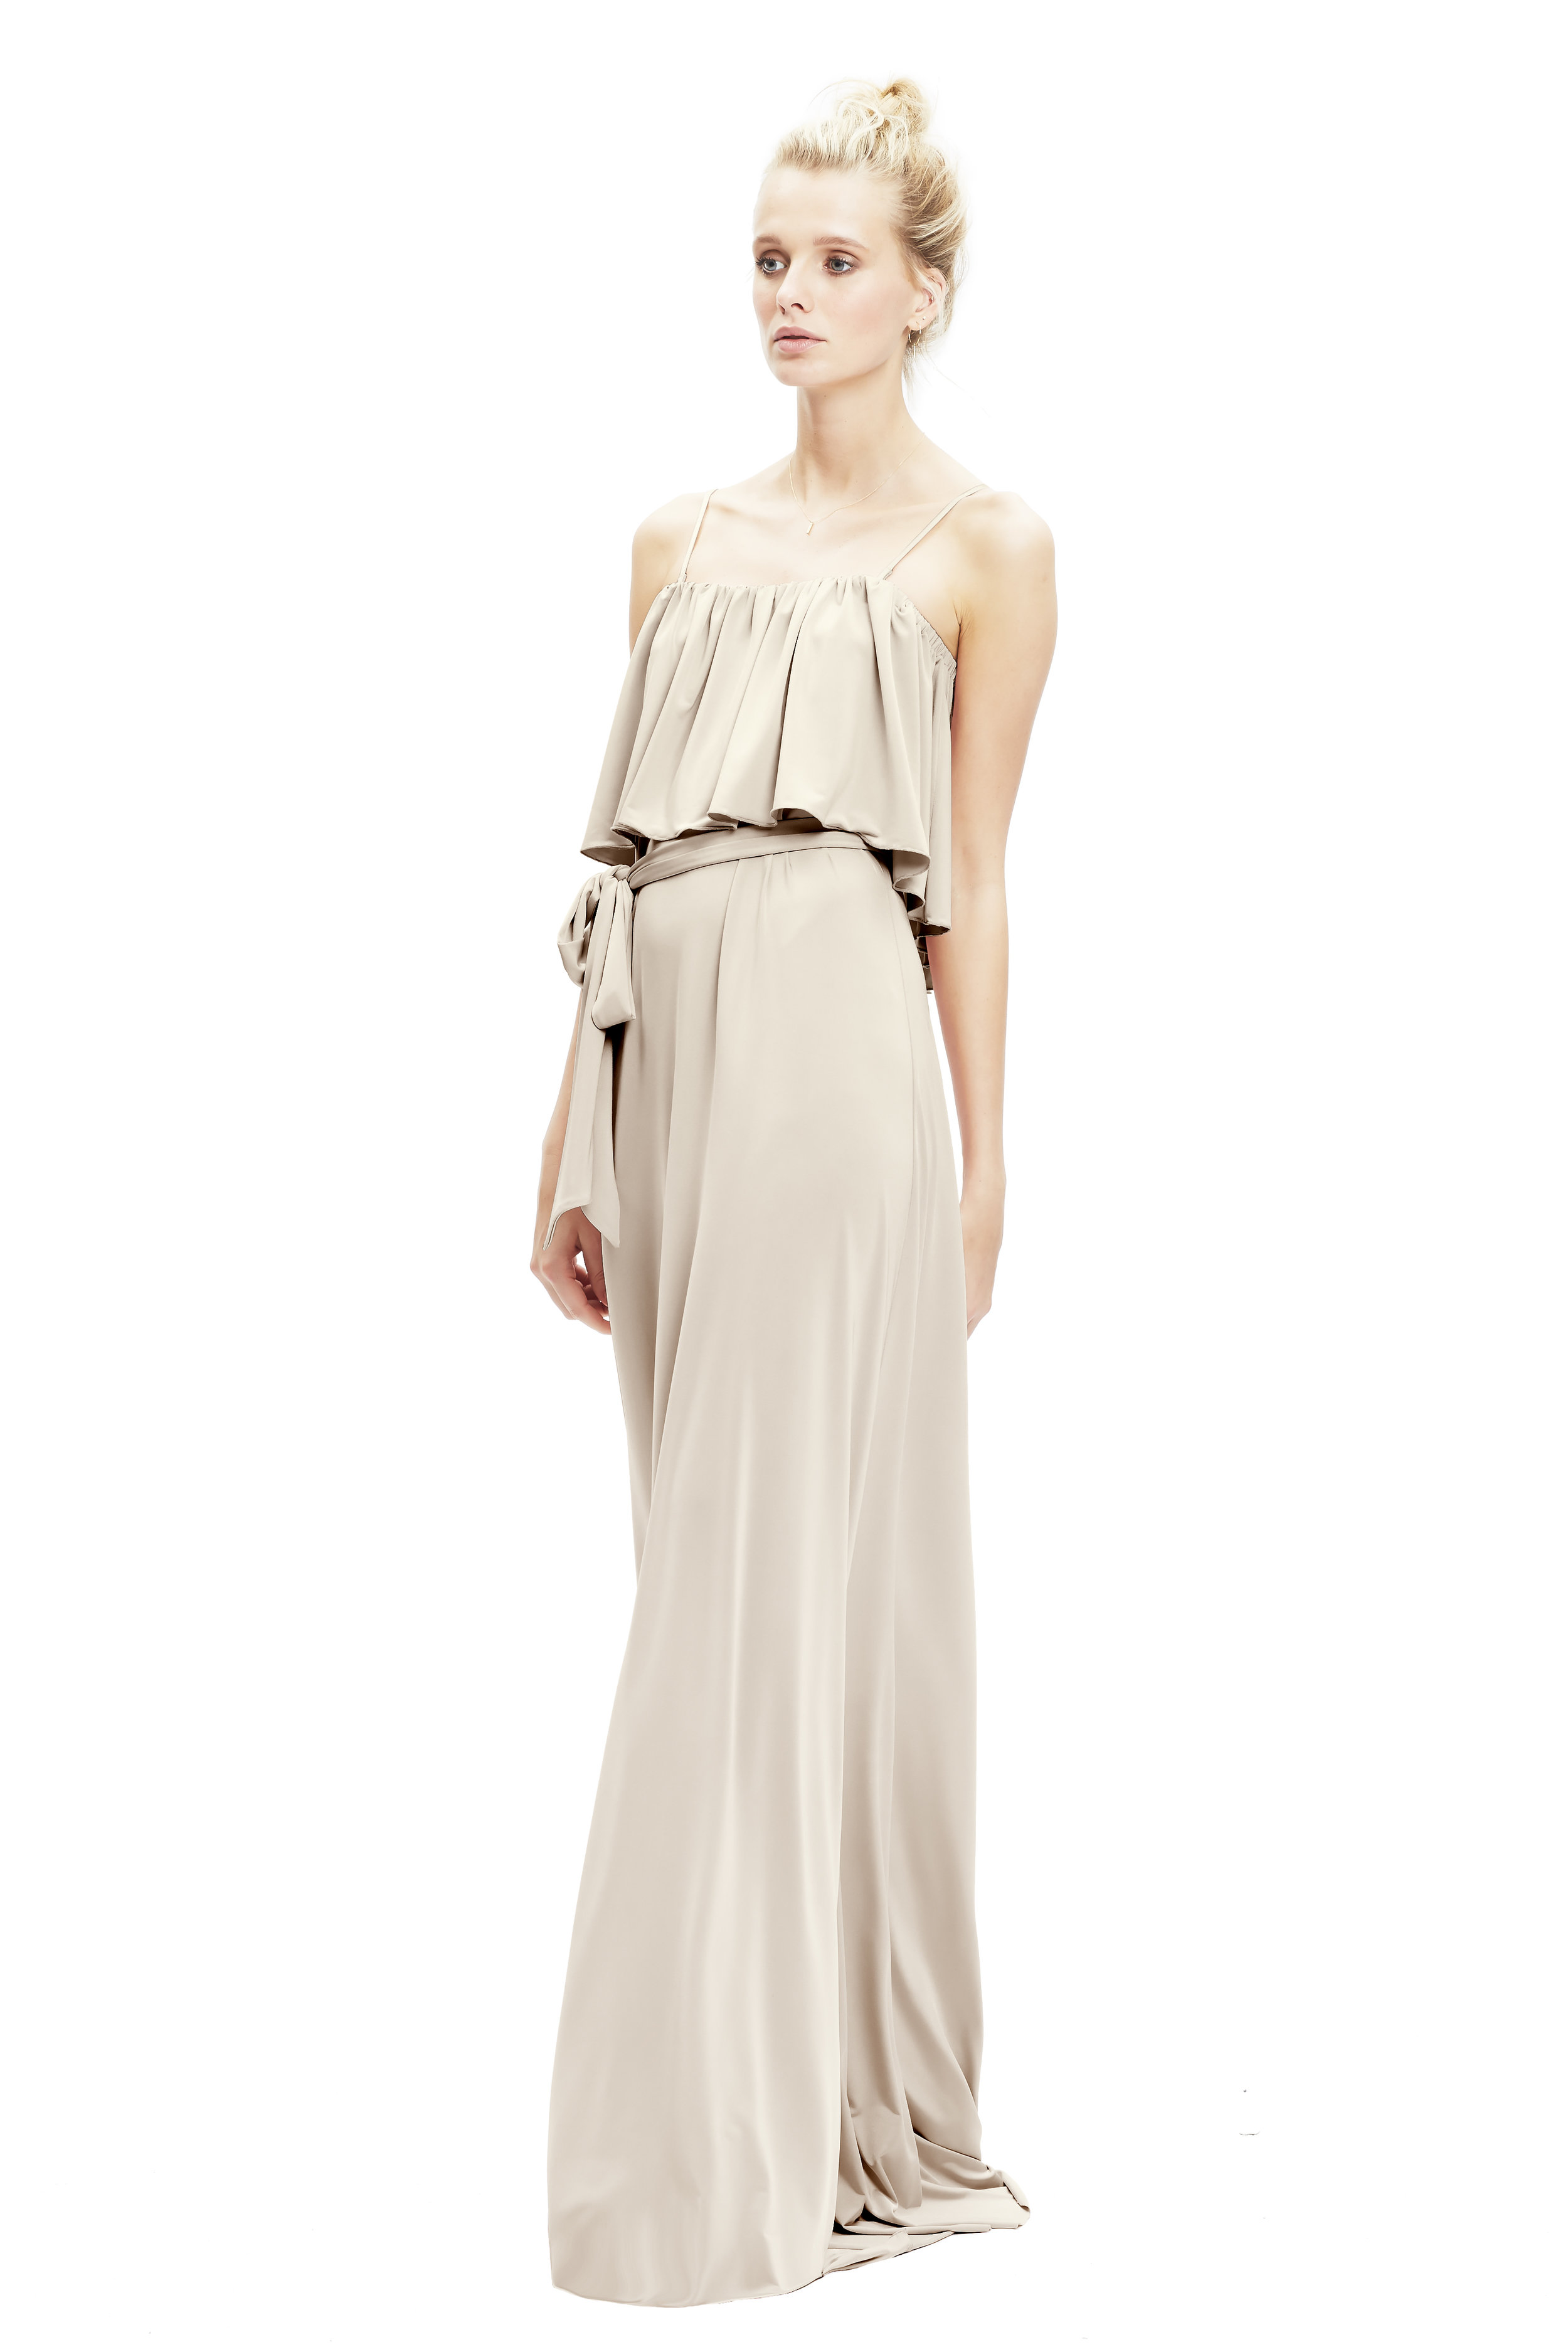 oyster-twobirds-bridesmaid-Maya-dress-with-straps | Lamare London | Luxury Wedding Planner London.jpg